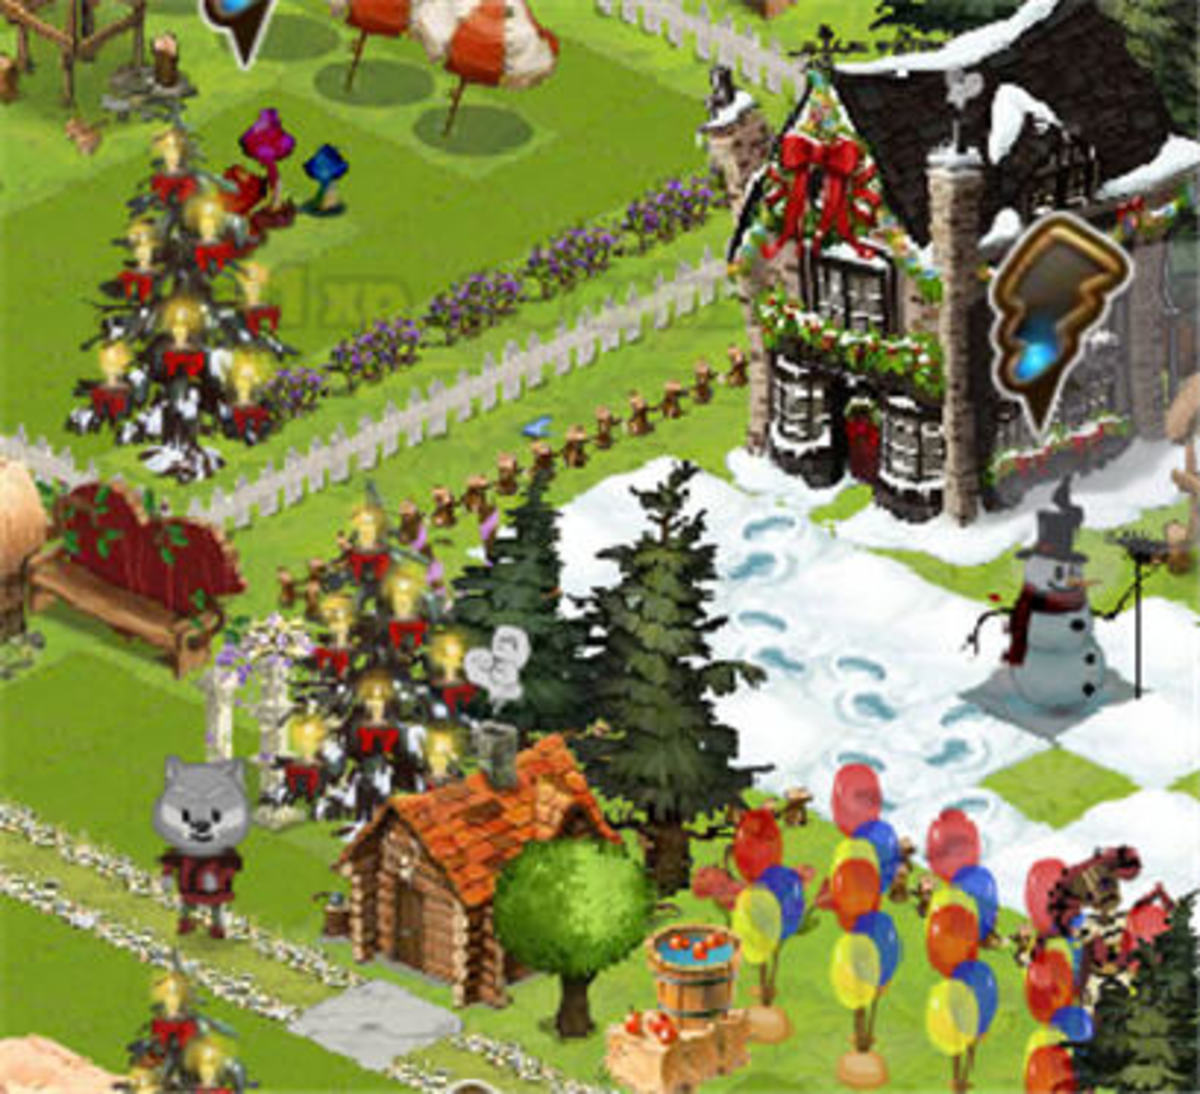 Apple Bob, Briggs (the snowman), and Gads Hill Place are some of the awesome items found in this snapshot.